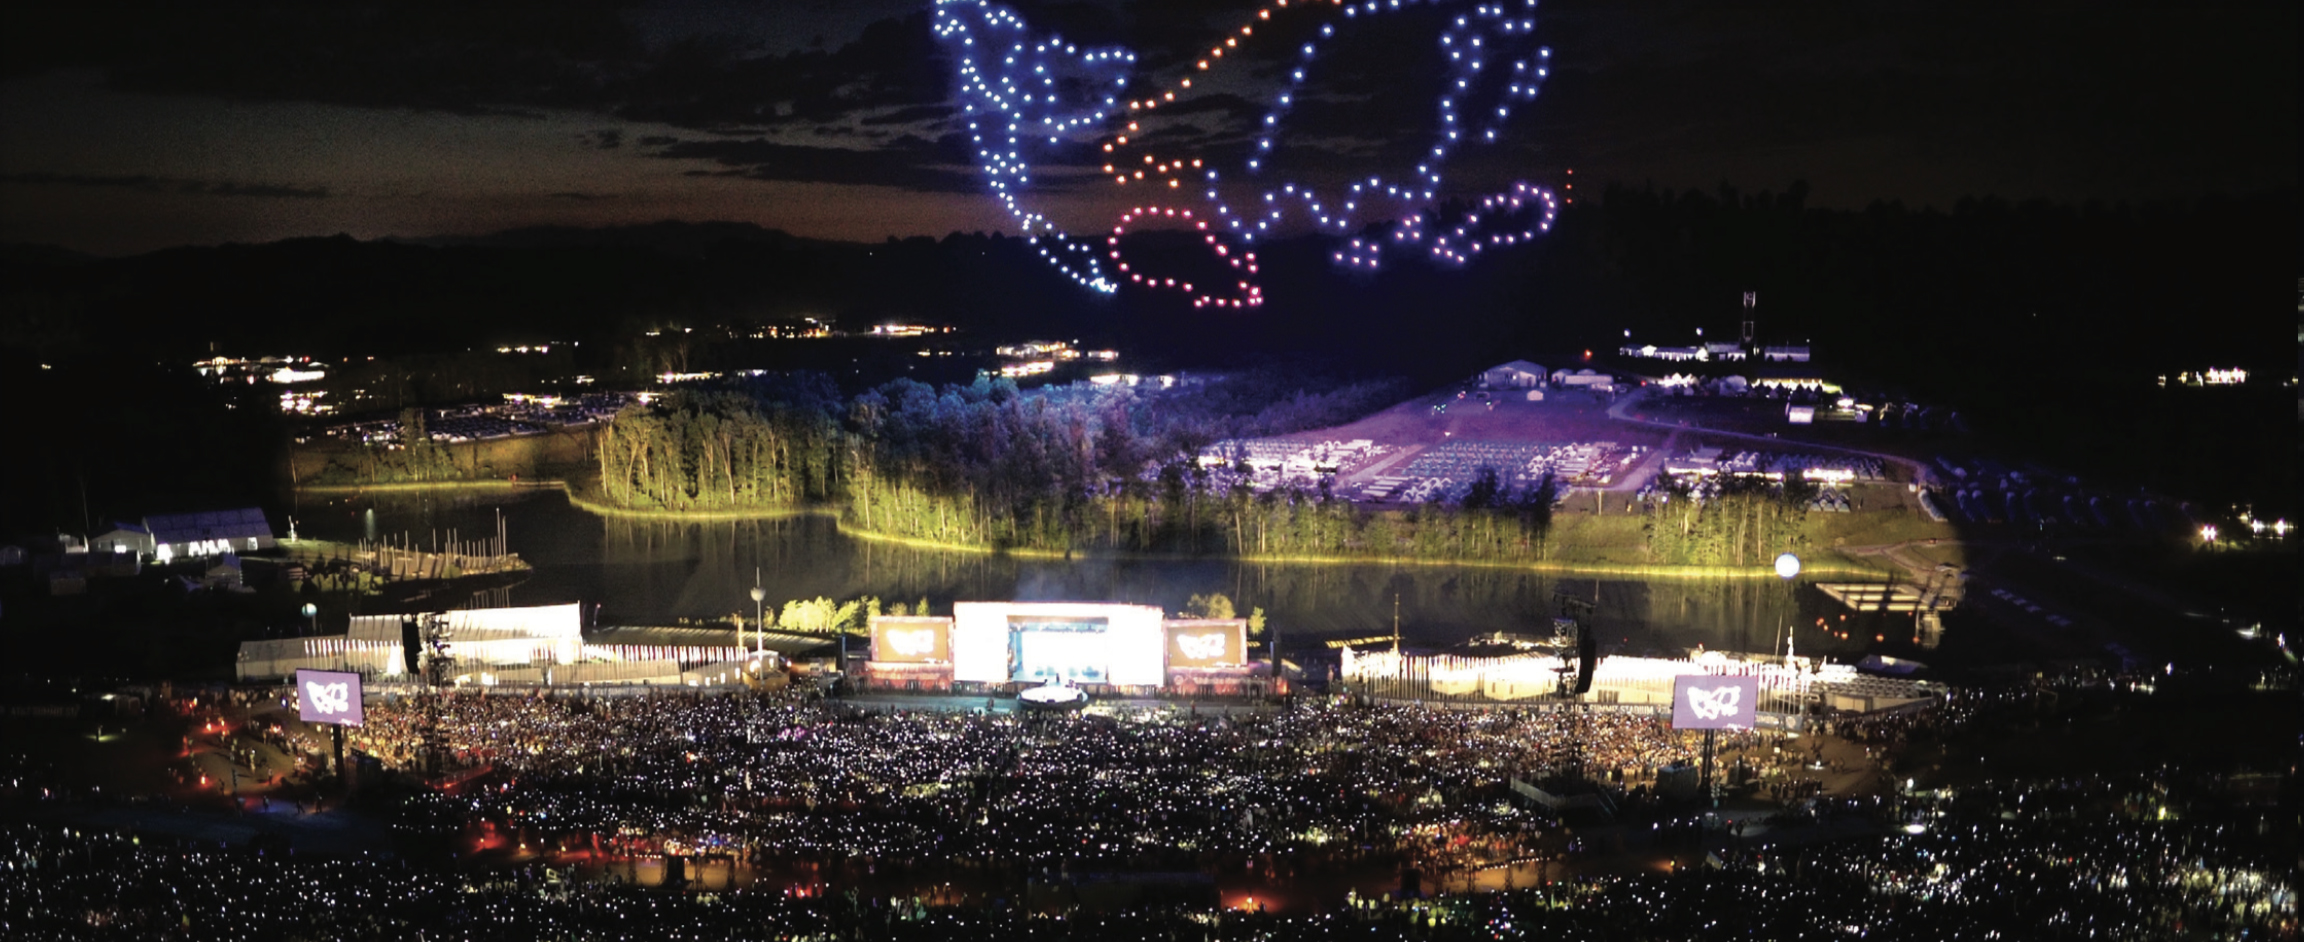 A swarm of 250 drones lights up the night sky.